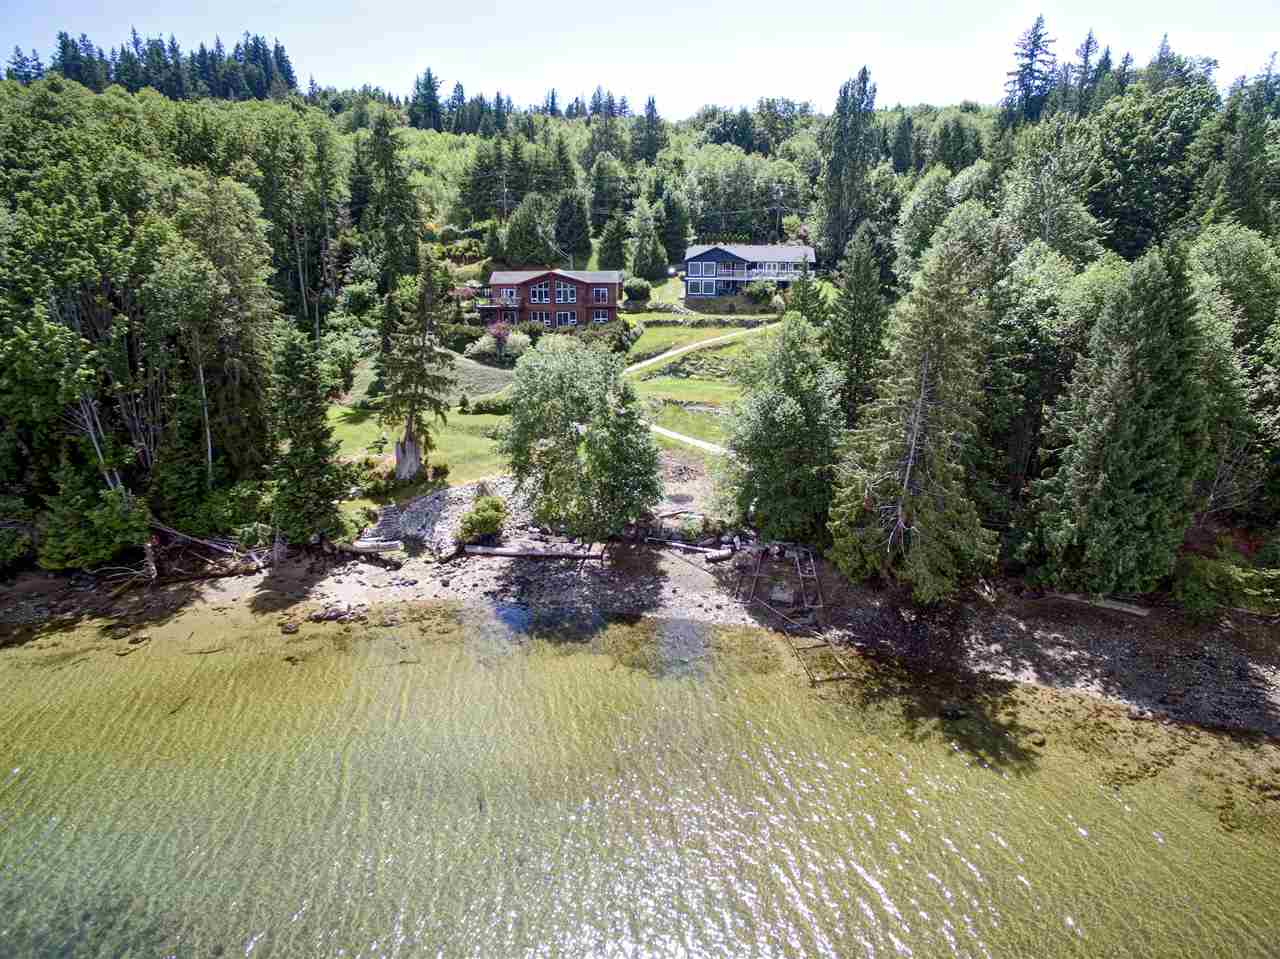 Photo 4: 6346 N GALE Avenue in Sechelt: Sechelt District House for sale (Sunshine Coast)  : MLS(r) # R2172275